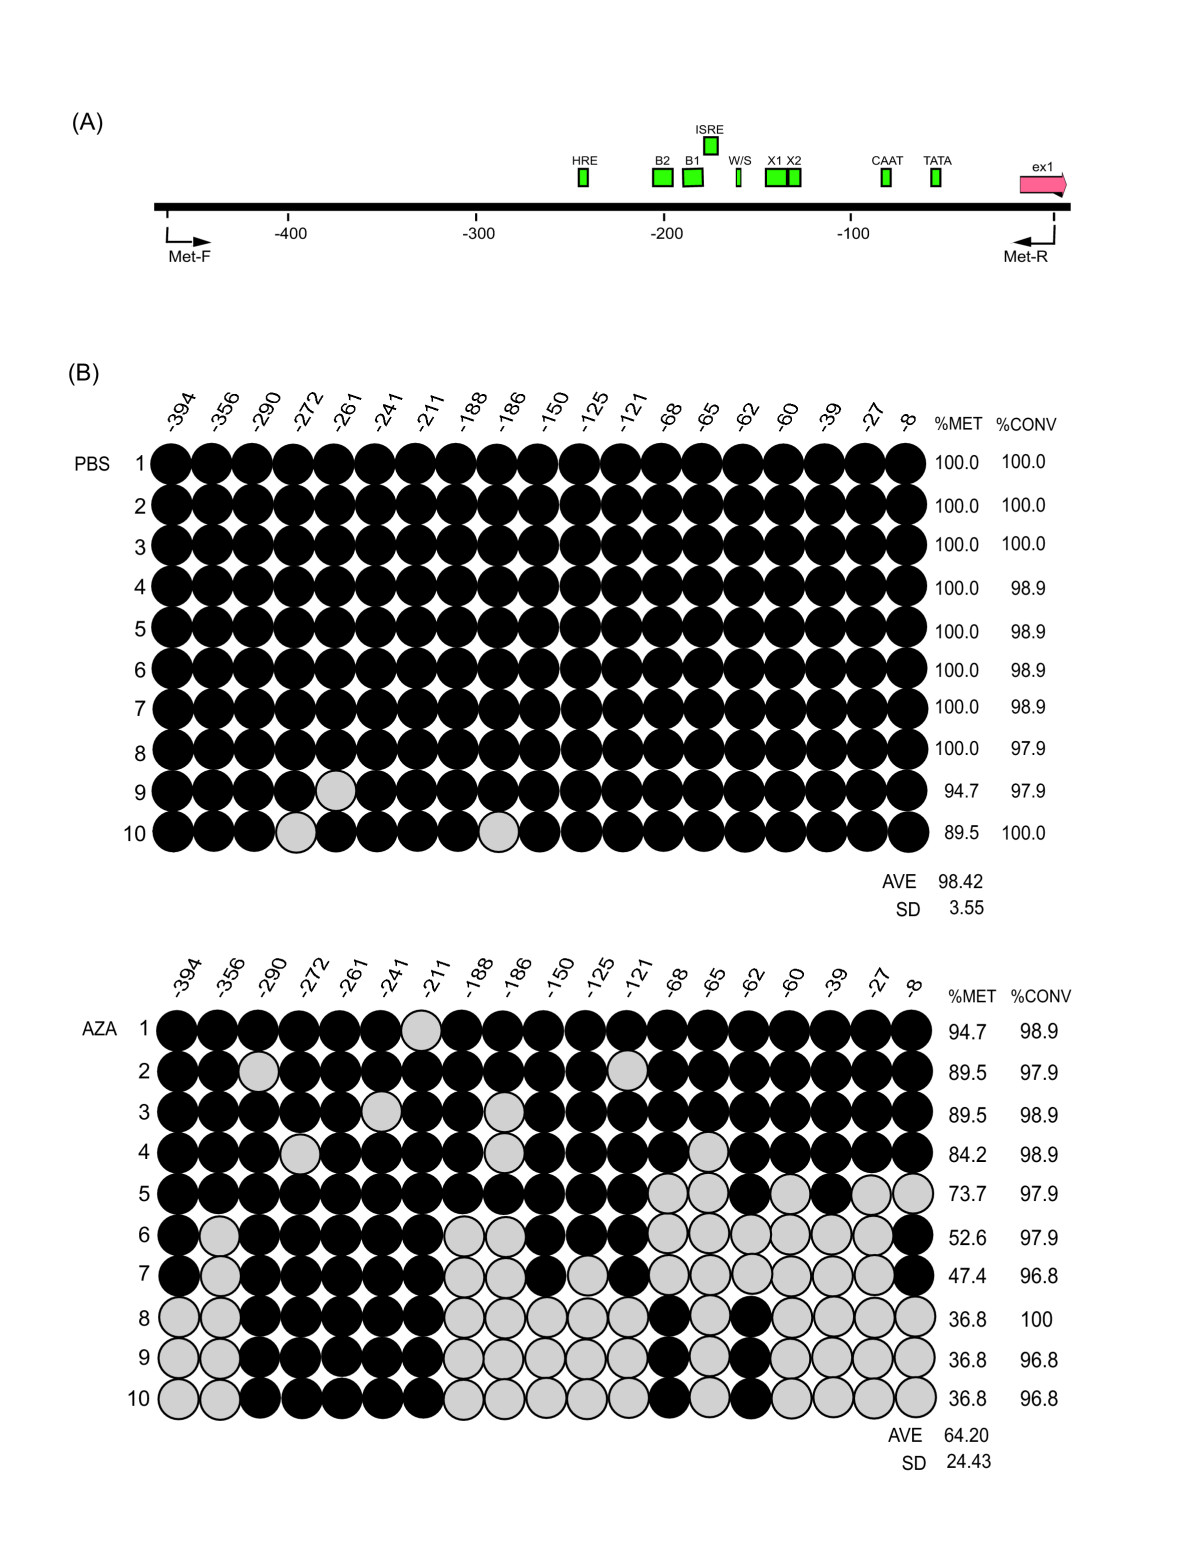 https://static-content.springer.com/image/art%3A10.1186%2F1476-4598-7-43/MediaObjects/12943_2008_Article_334_Fig2_HTML.jpg